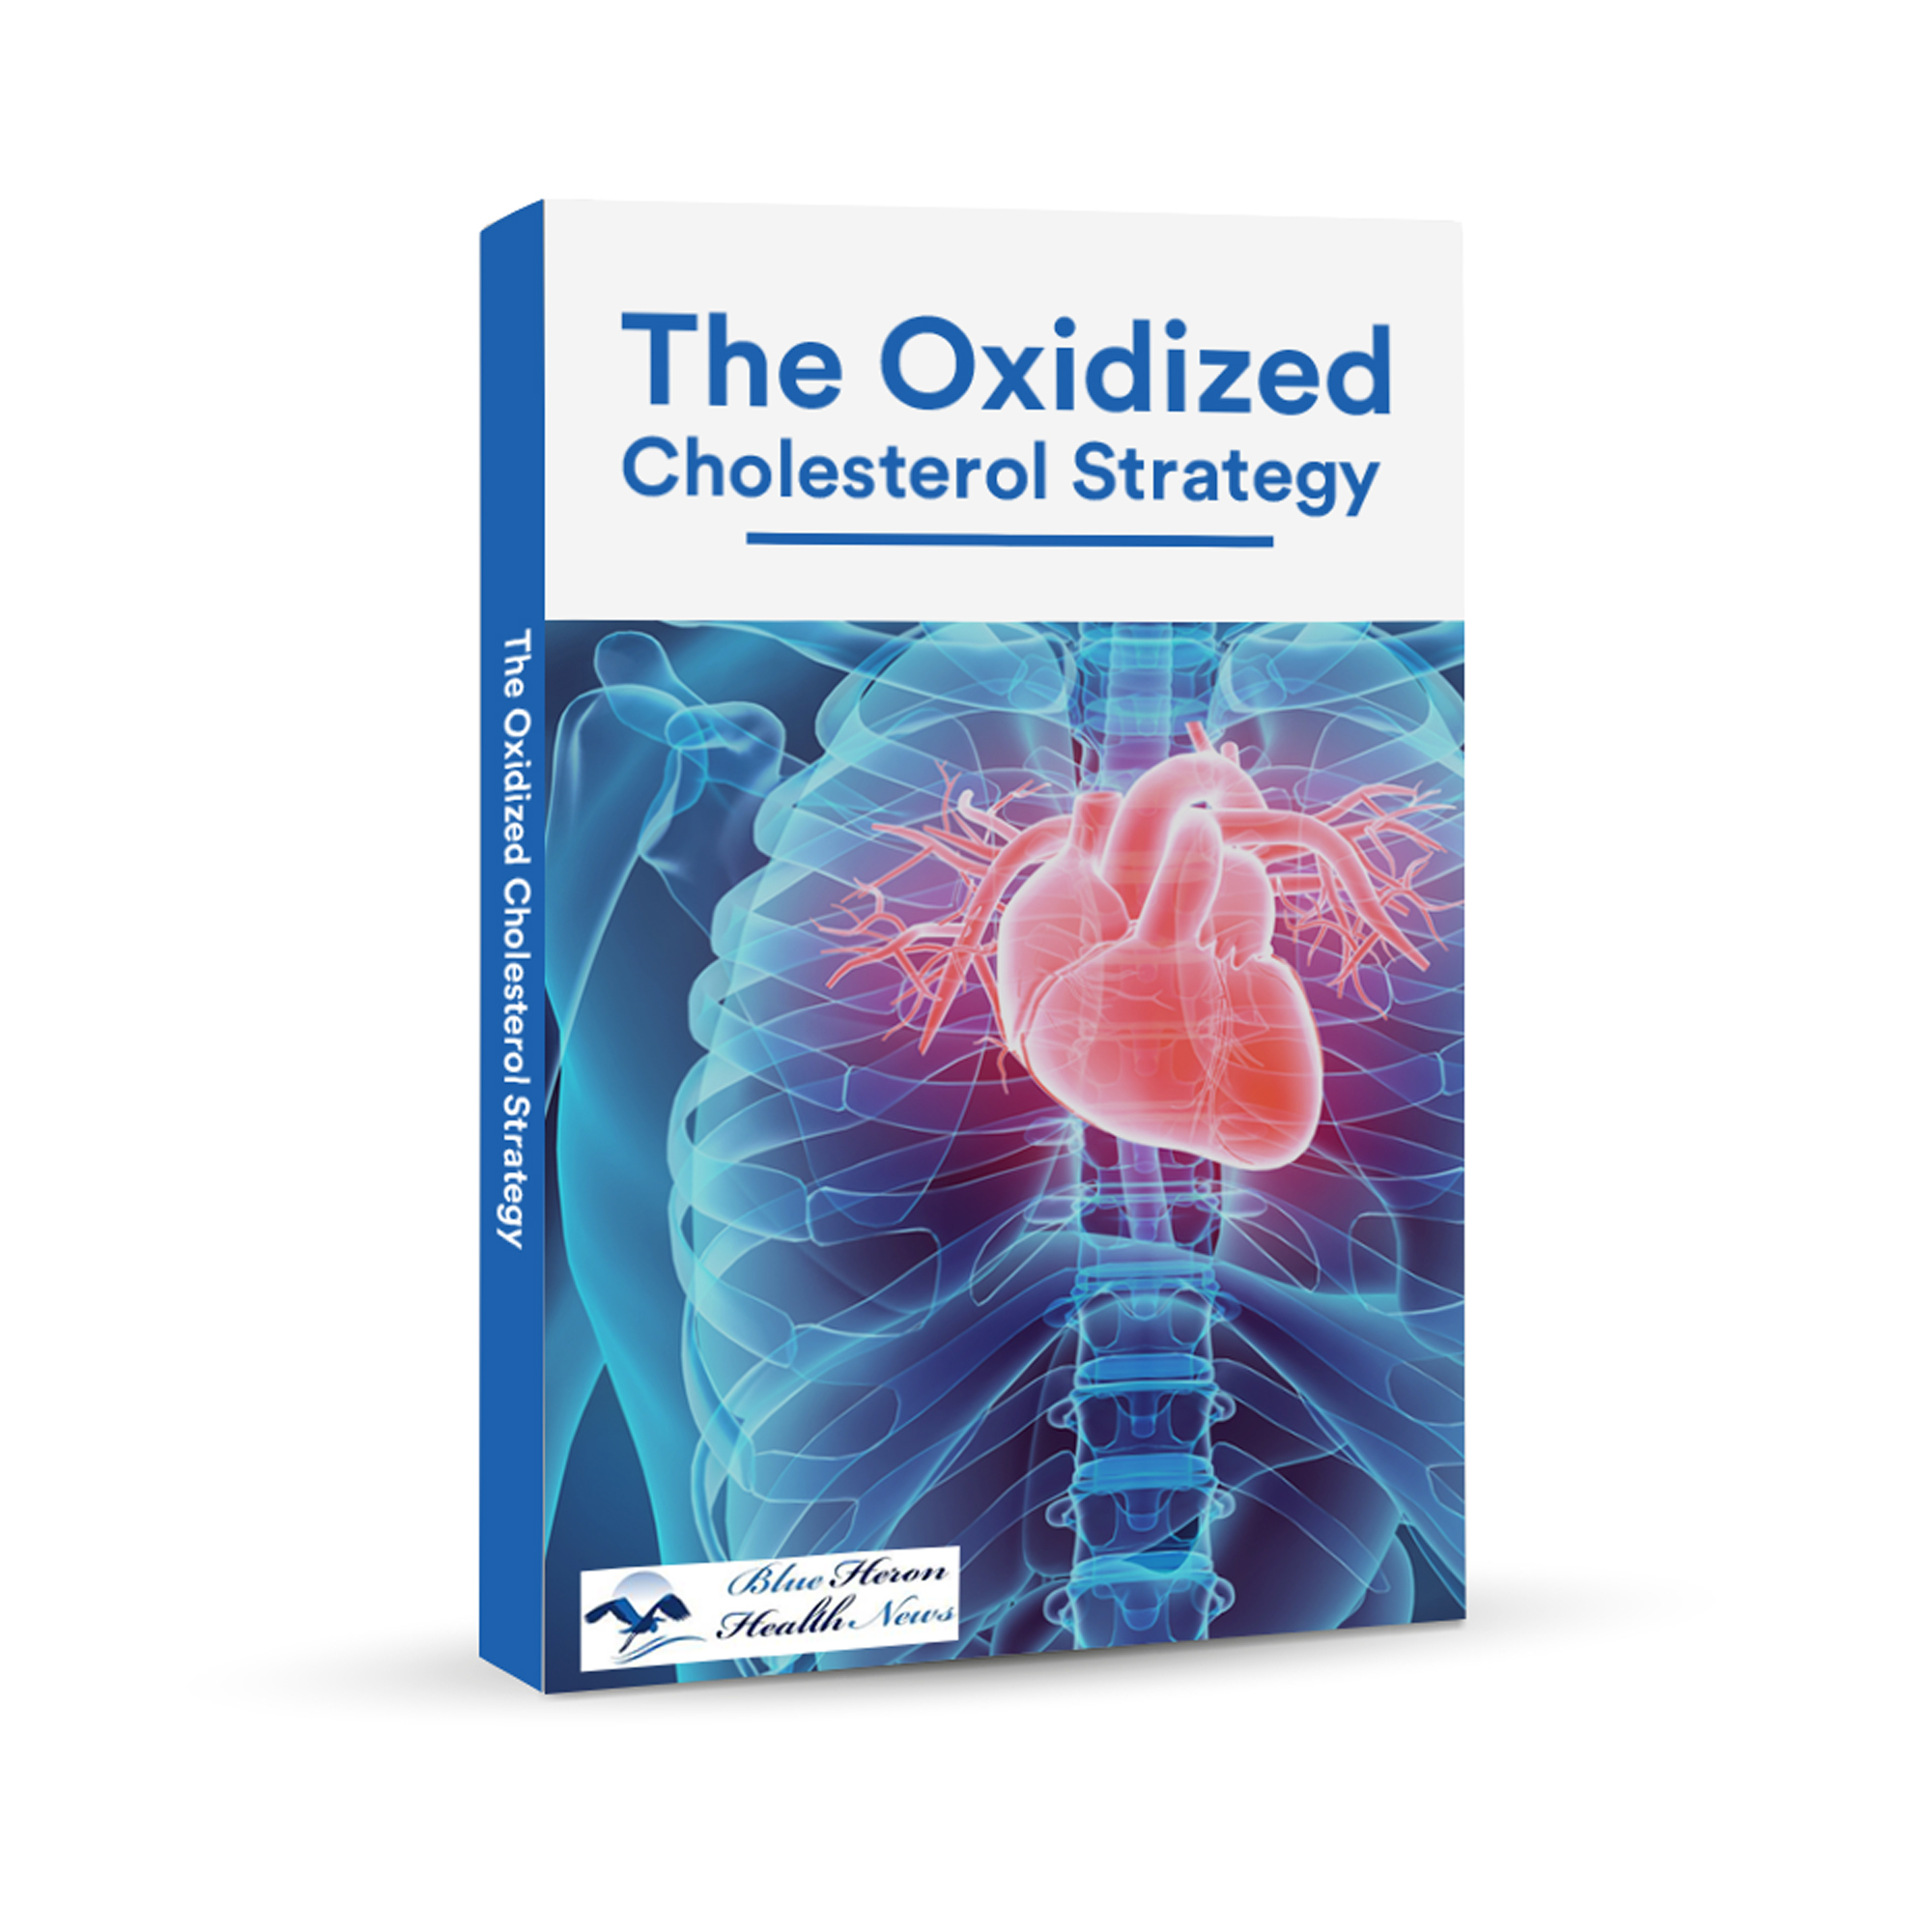 The Oxidized Cholesterol Strategy Reviews